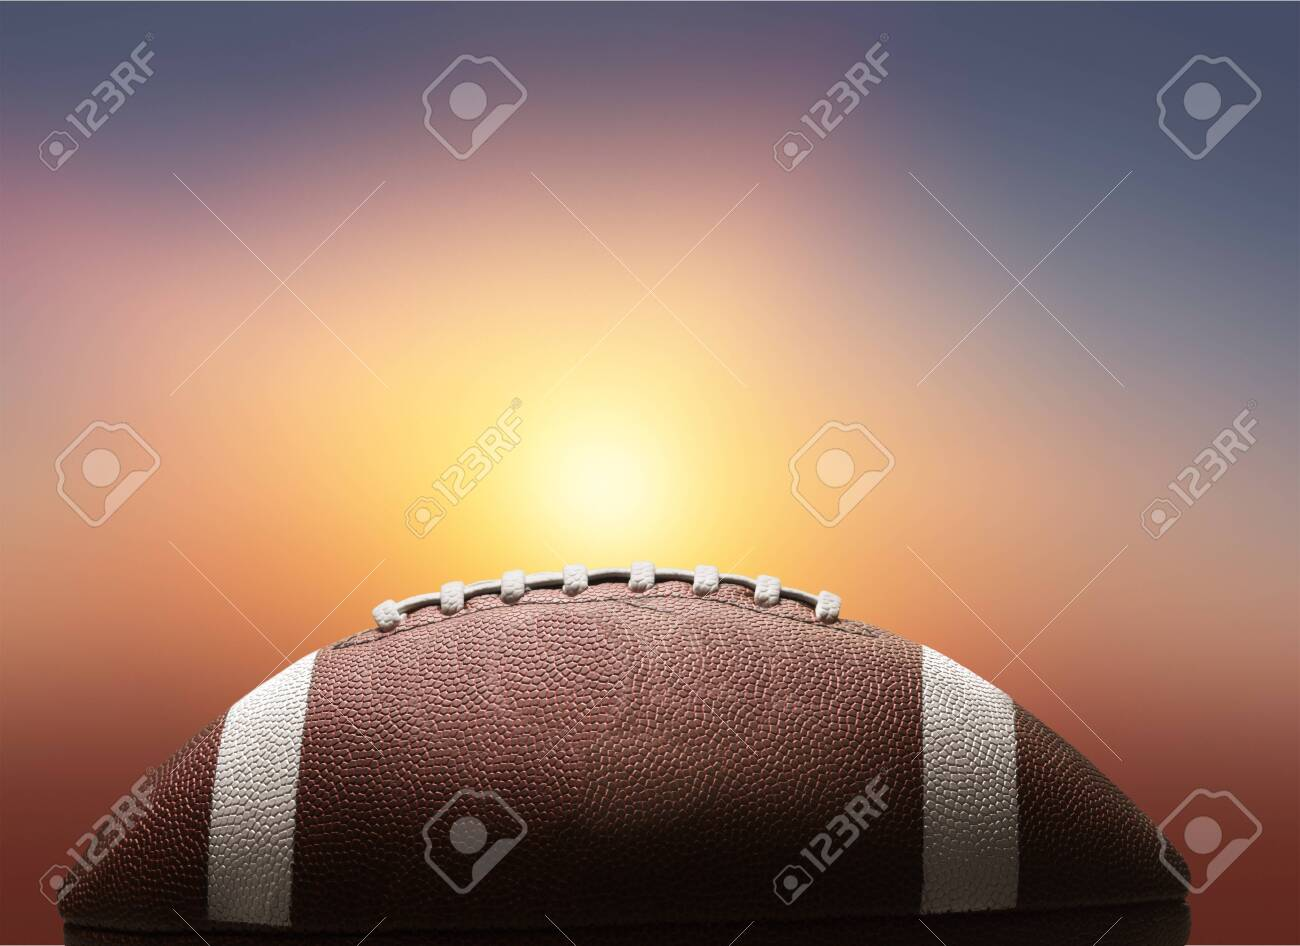 American football ball on background - 134254581